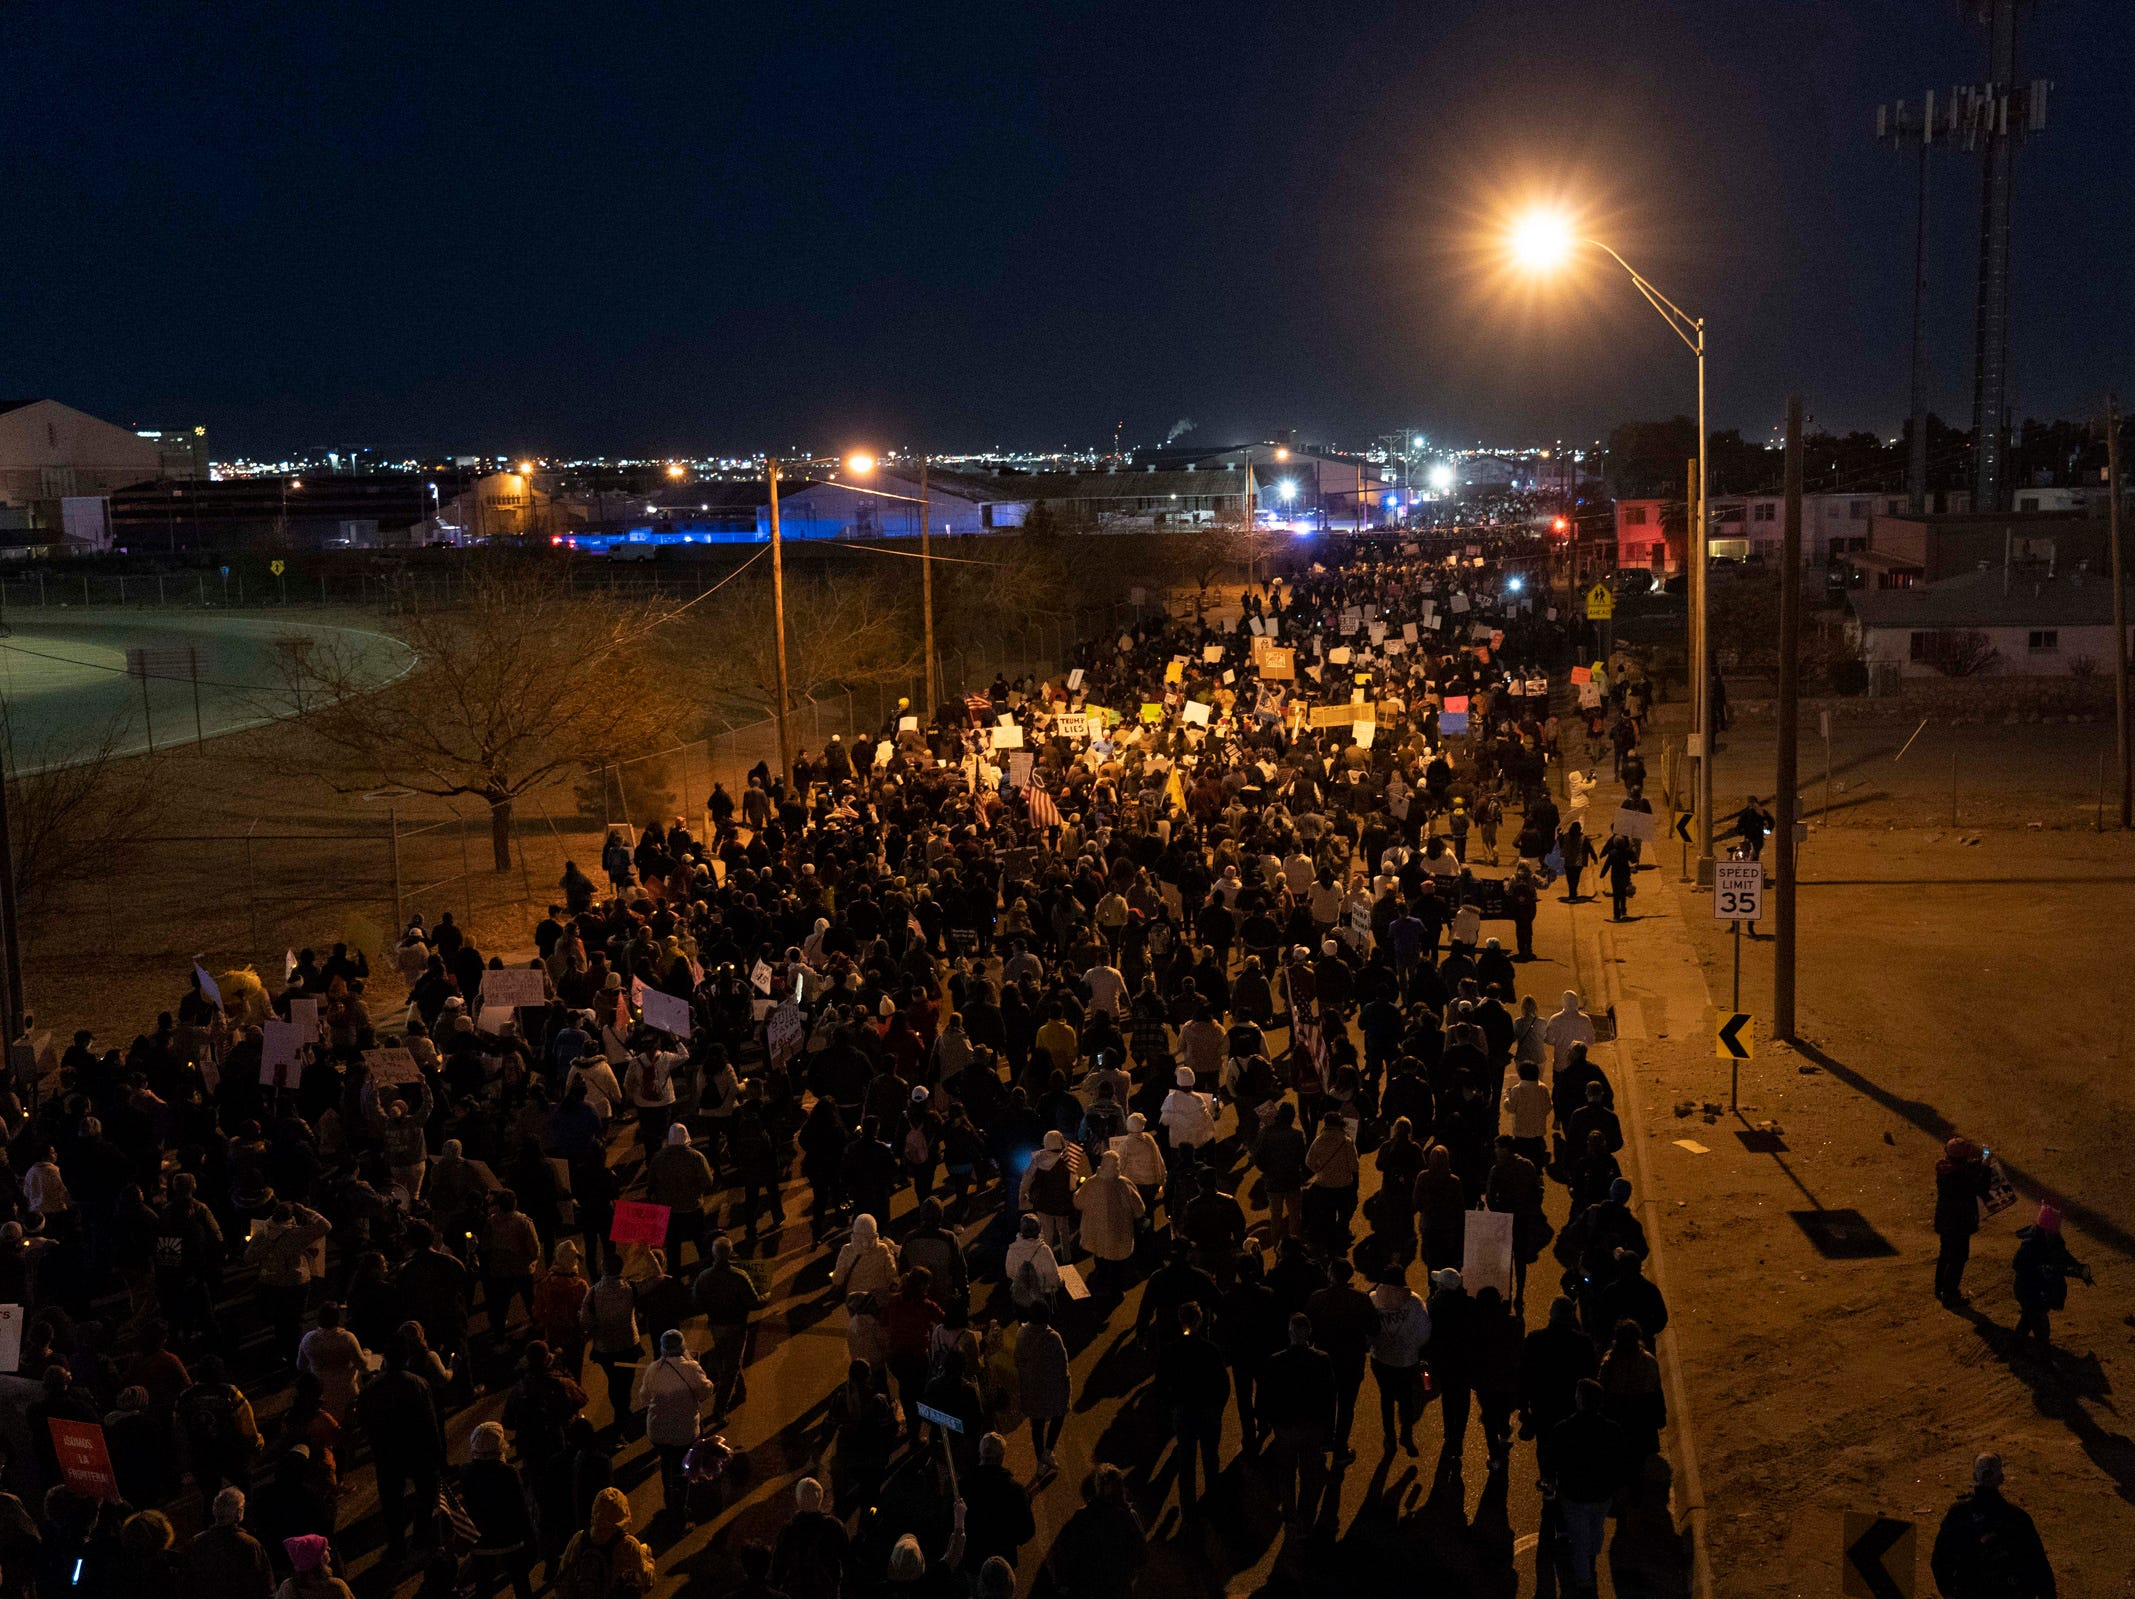 2/11/19 6:25:04 PM -- El Paso, TX, U.S.A  -- Hundreds joined the March for Truth along with Border Network for Human Rights, Women's March, to protest against President Trump campaign rally near El Paso County Coliseum on Feb. 11, 2019.